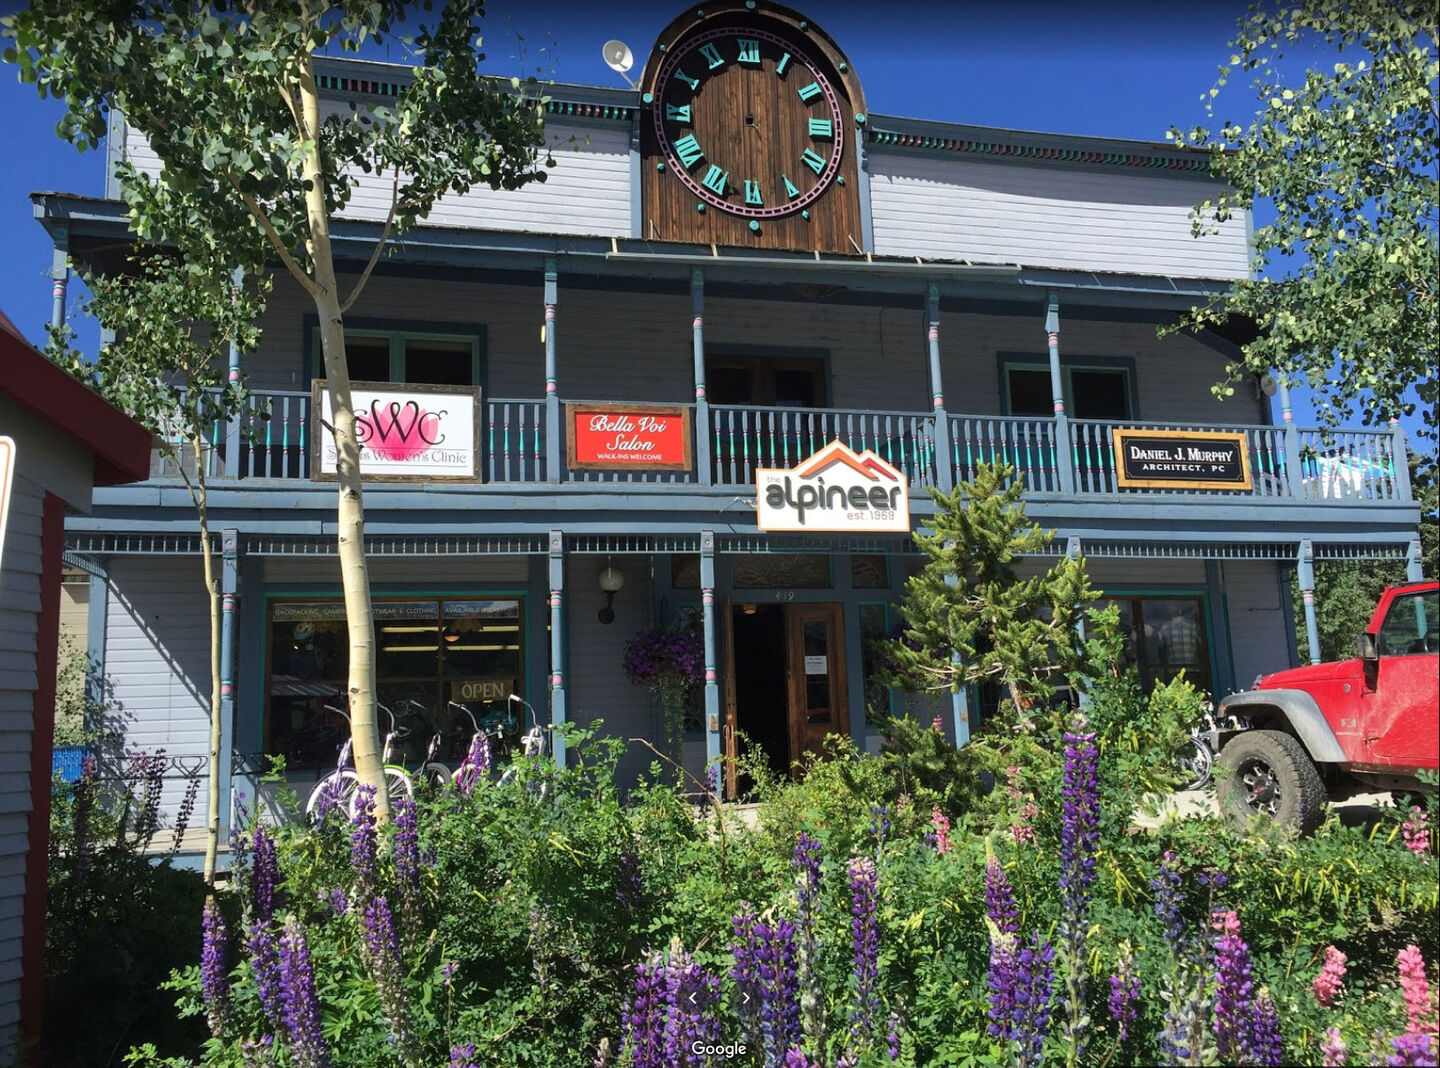 Christy Sports at The Alpineer Crested Butte Storefront